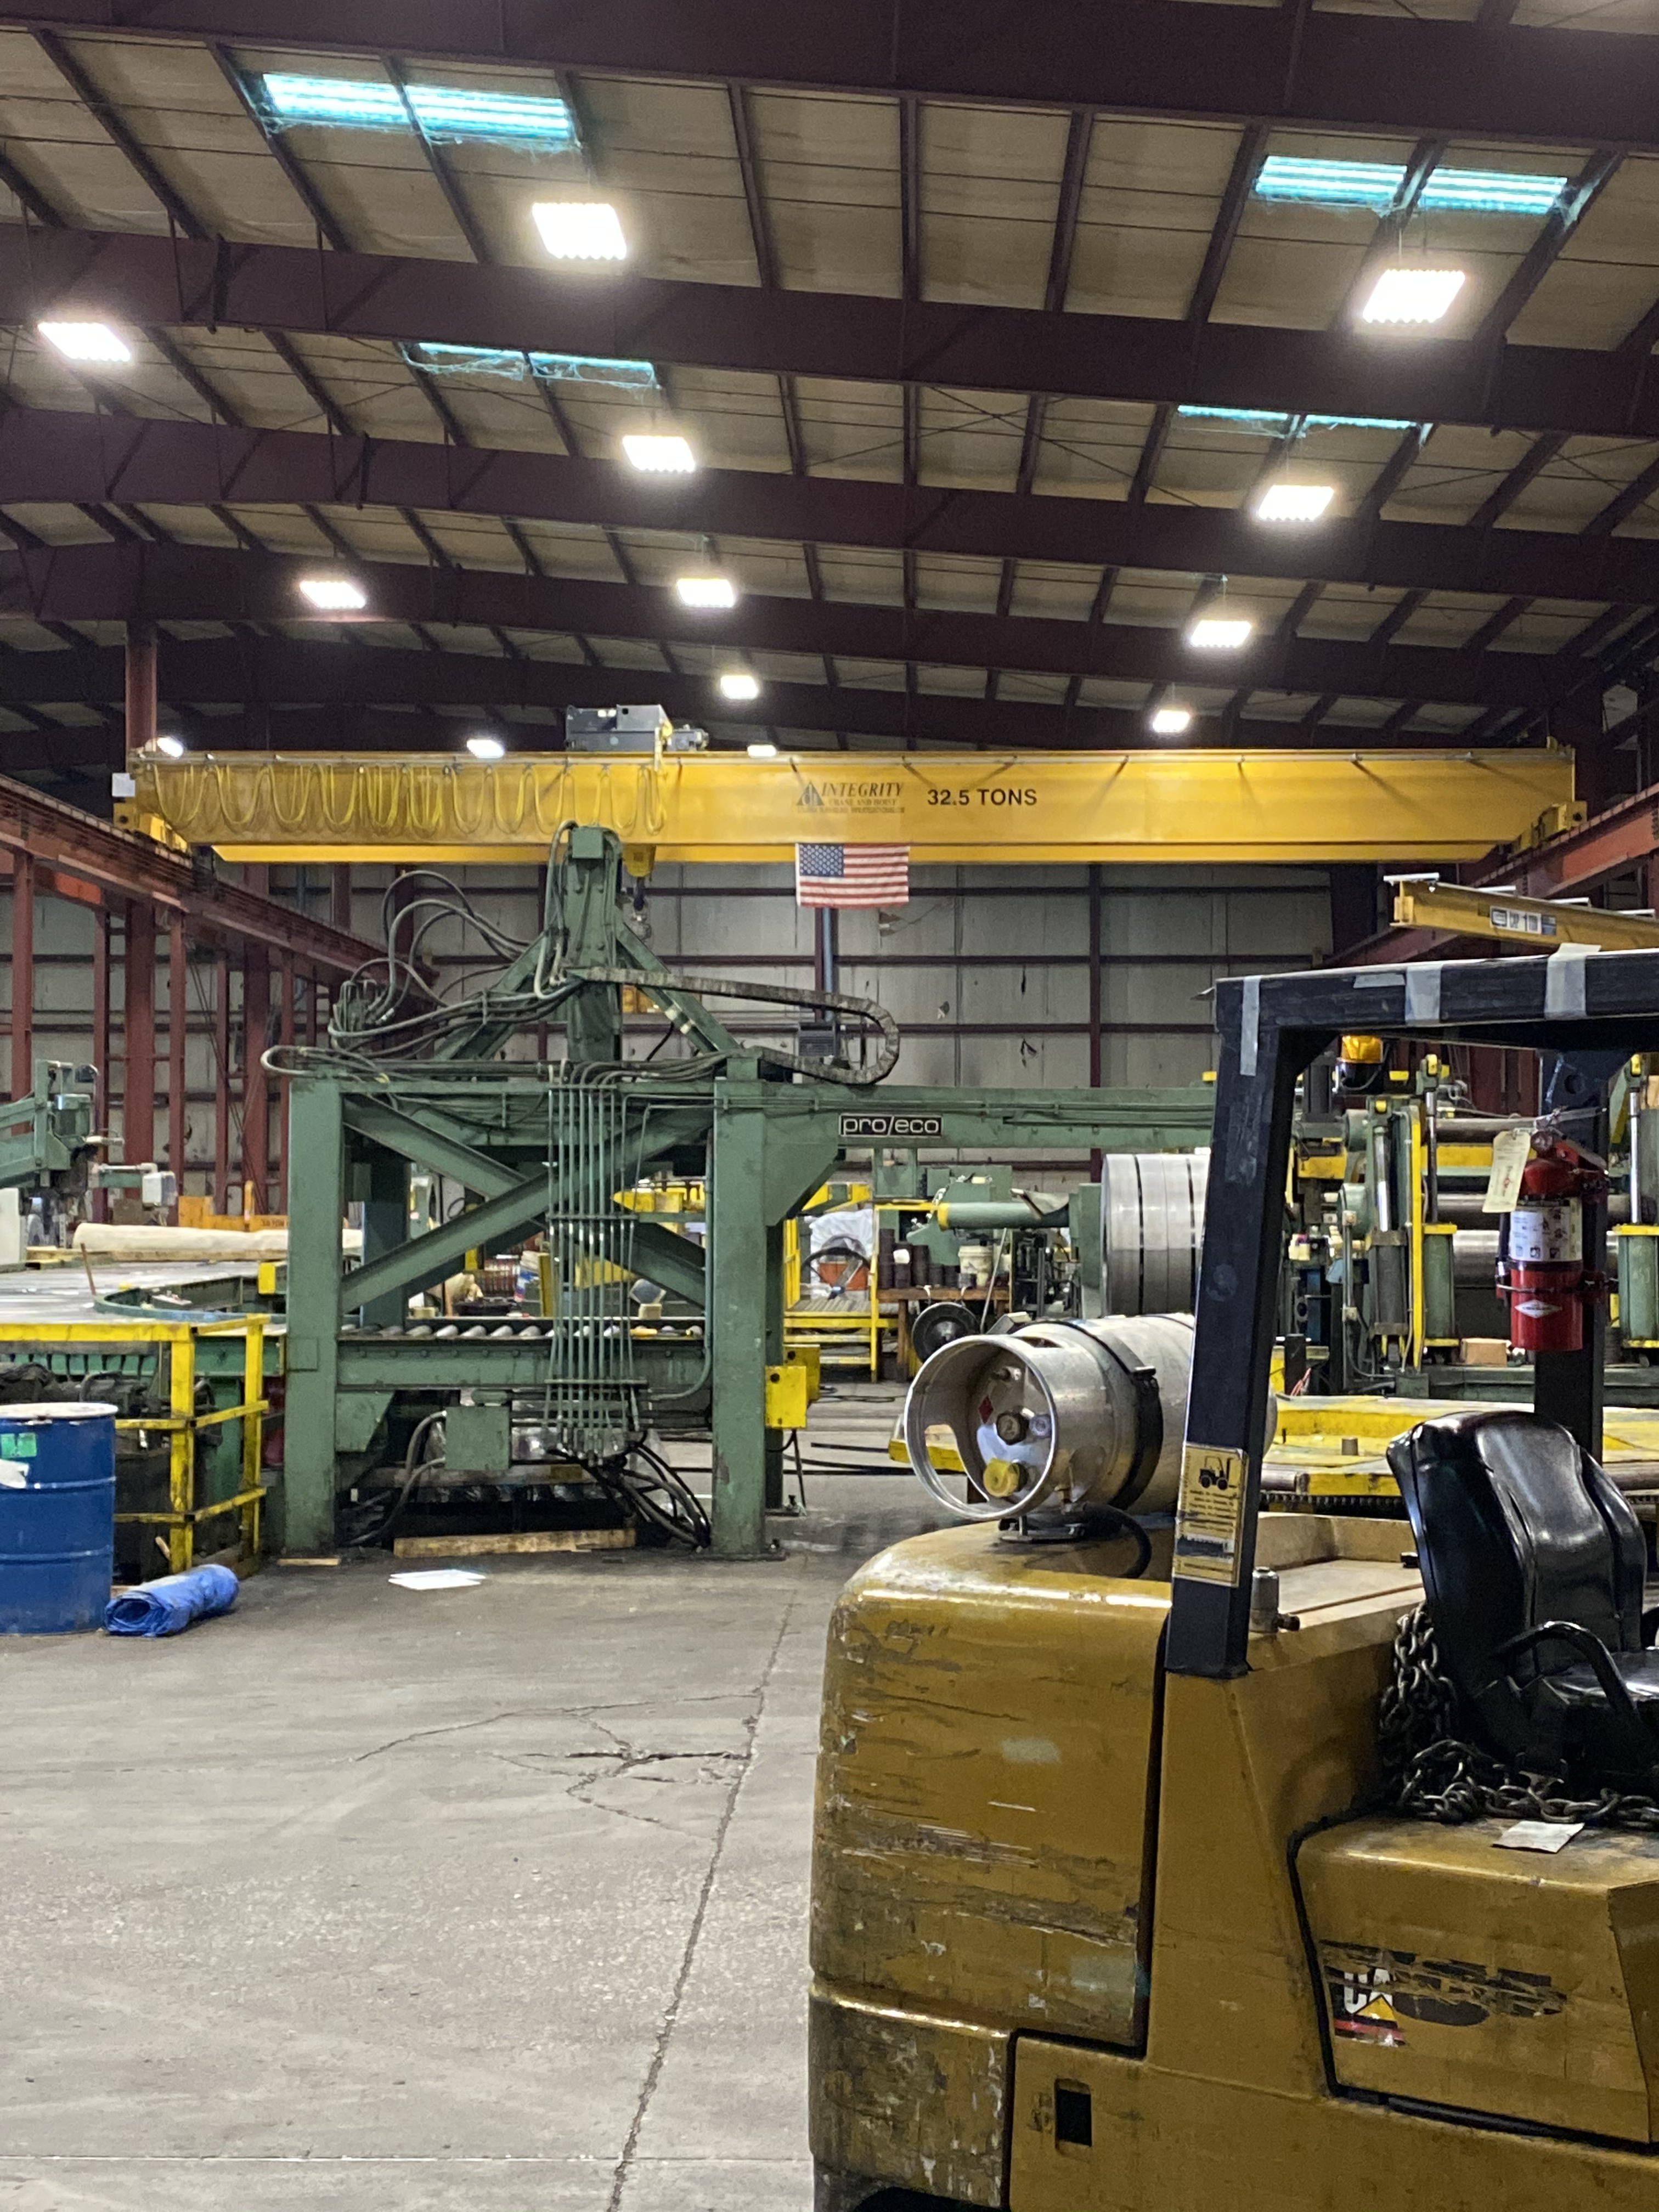 53,000 SQ. FT. Industrial Crane Building,3,000 SQ. FT. - Image 3 of 5